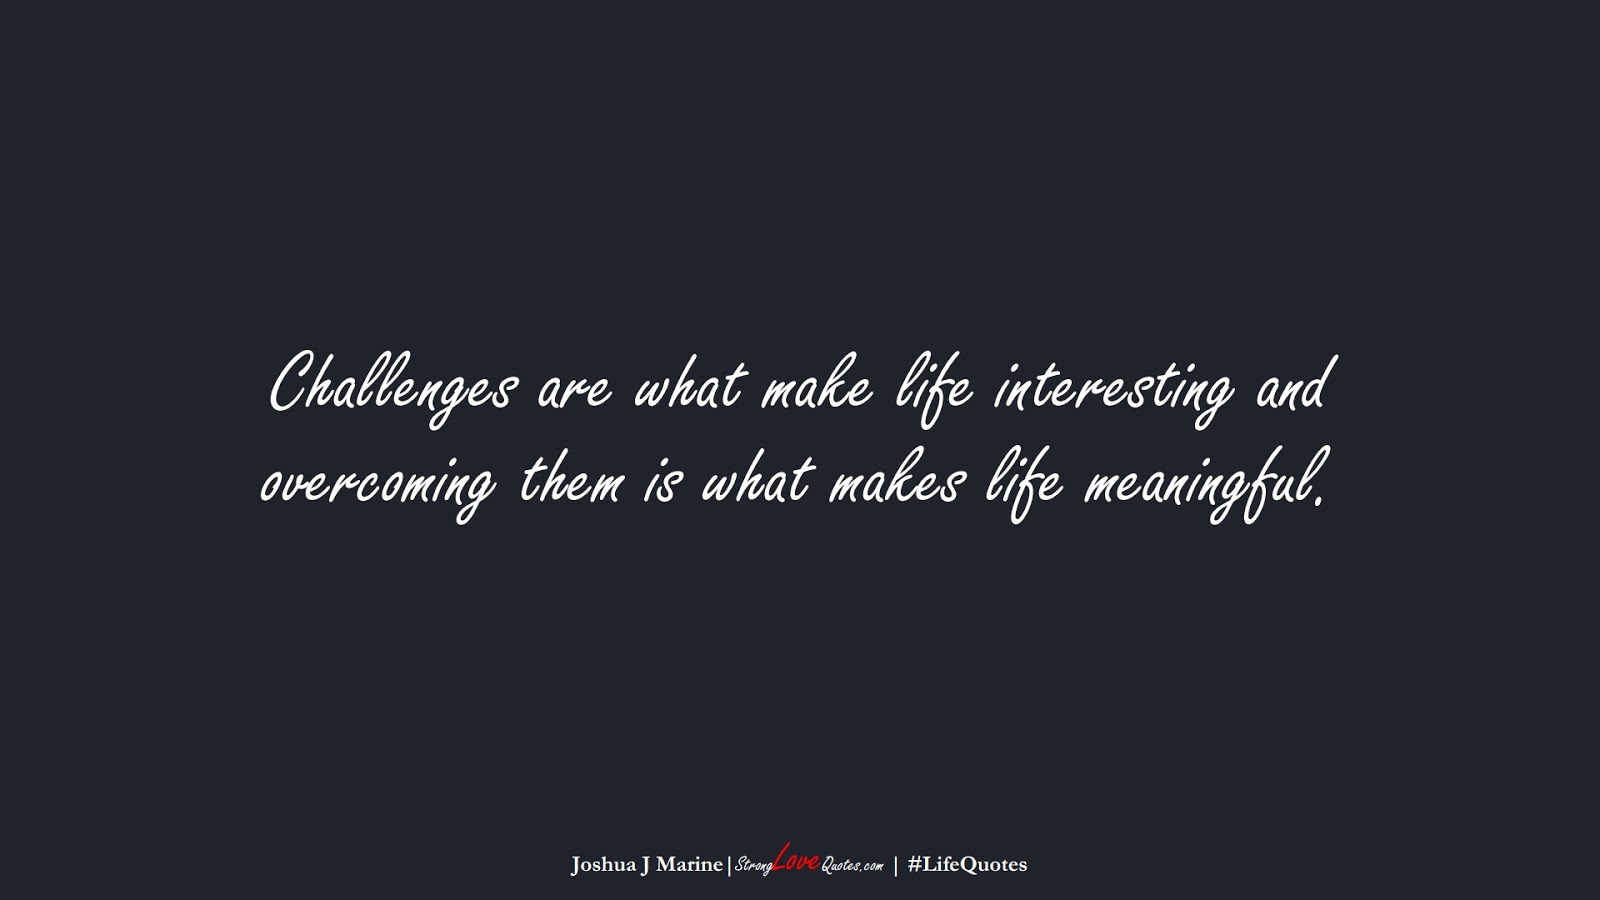 Challenges are what make life interesting and overcoming them is what makes life meaningful. (Joshua J Marine);  #LifeQuotes